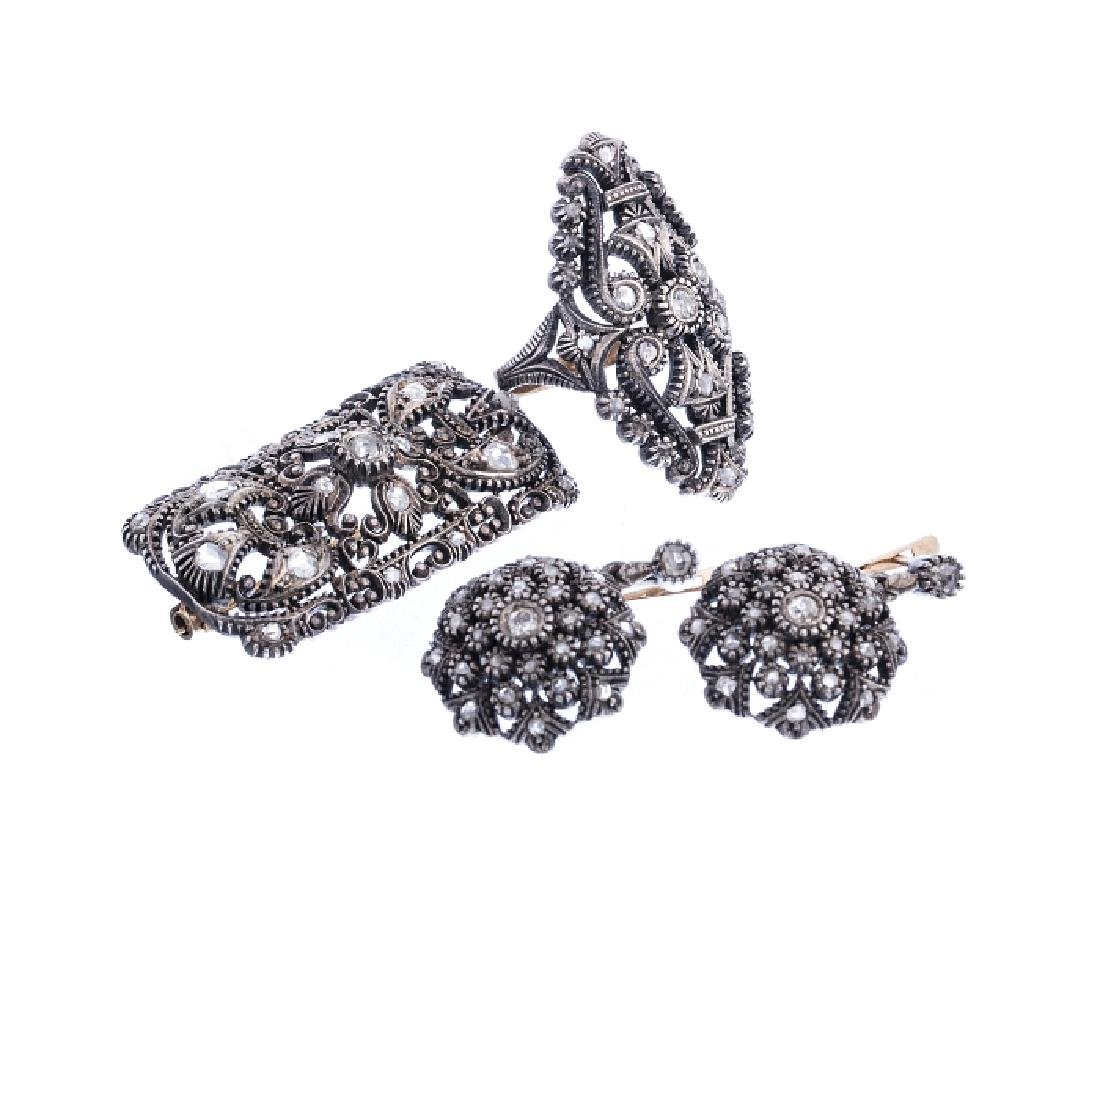 Pair of earrings, broach and ring in silver with